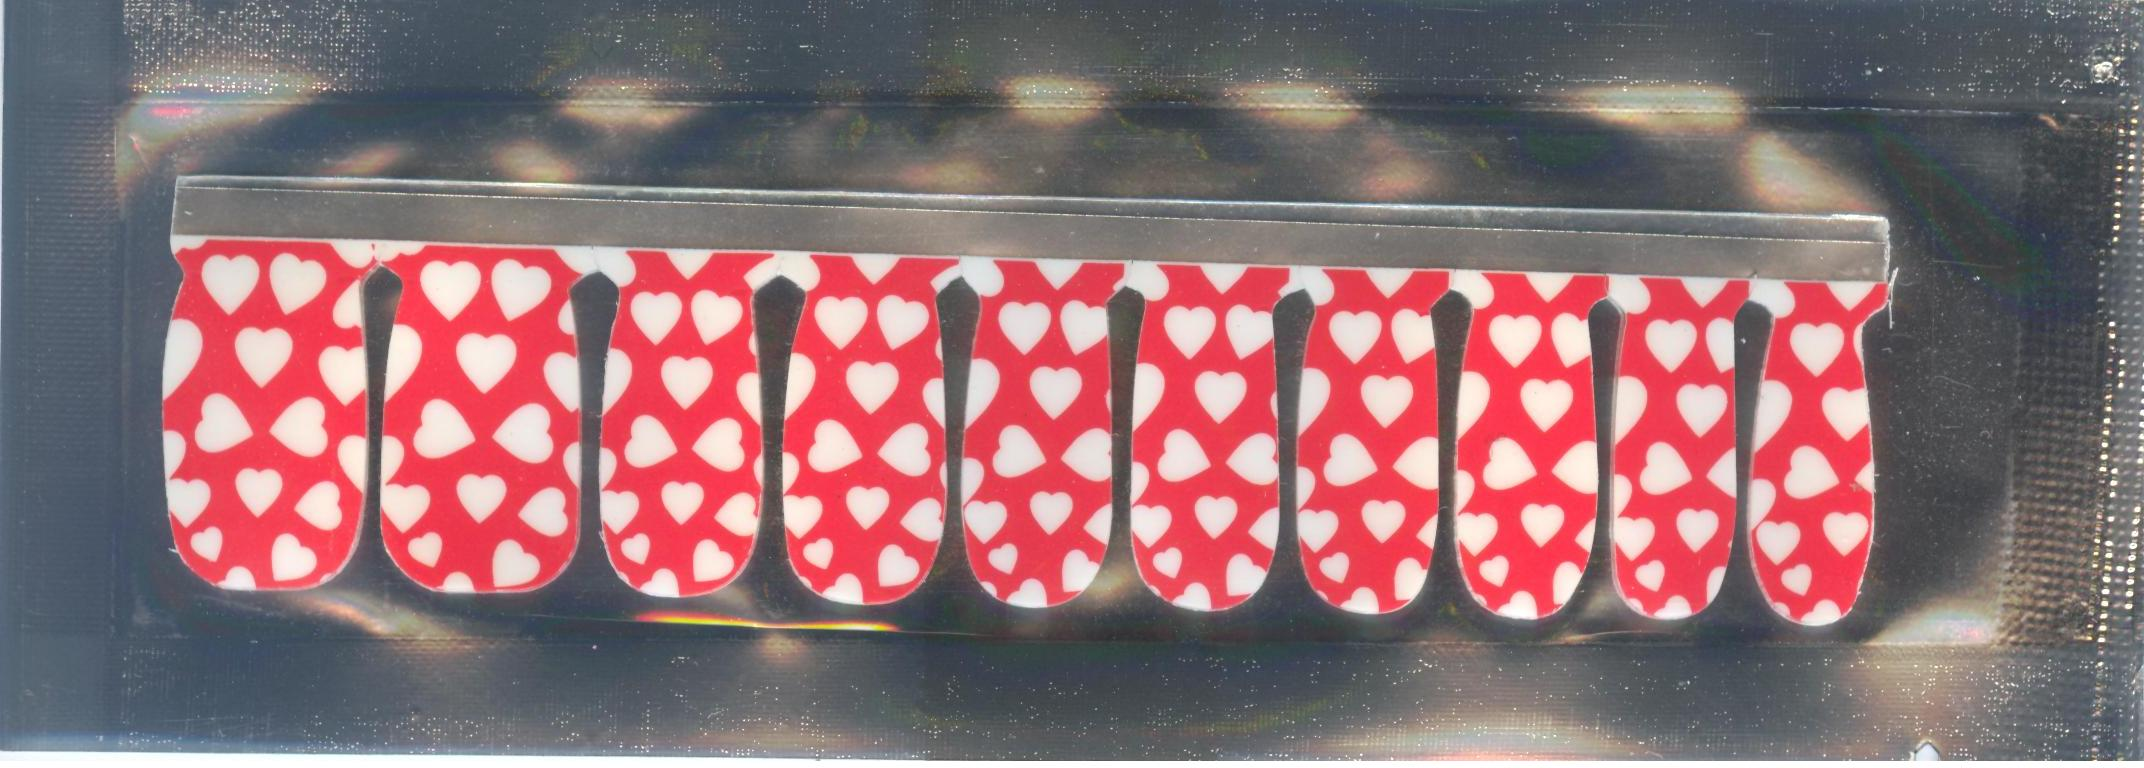 White Hearts on Red 100% Nail Polish Applique